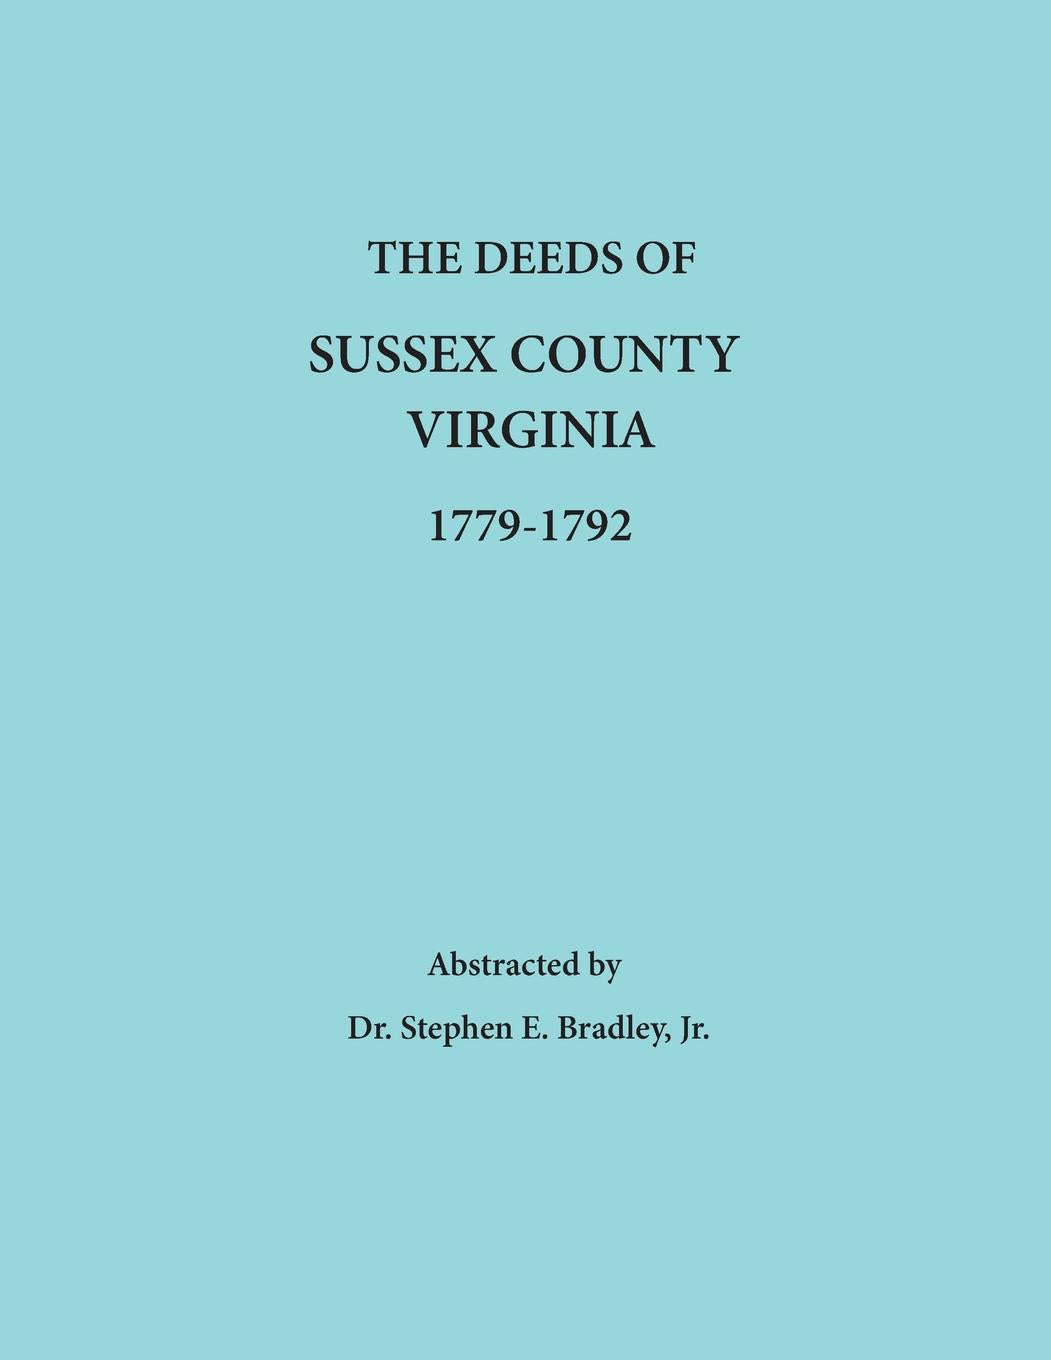 The Deeds of Sussex County, Virginia, 1779 - 1792